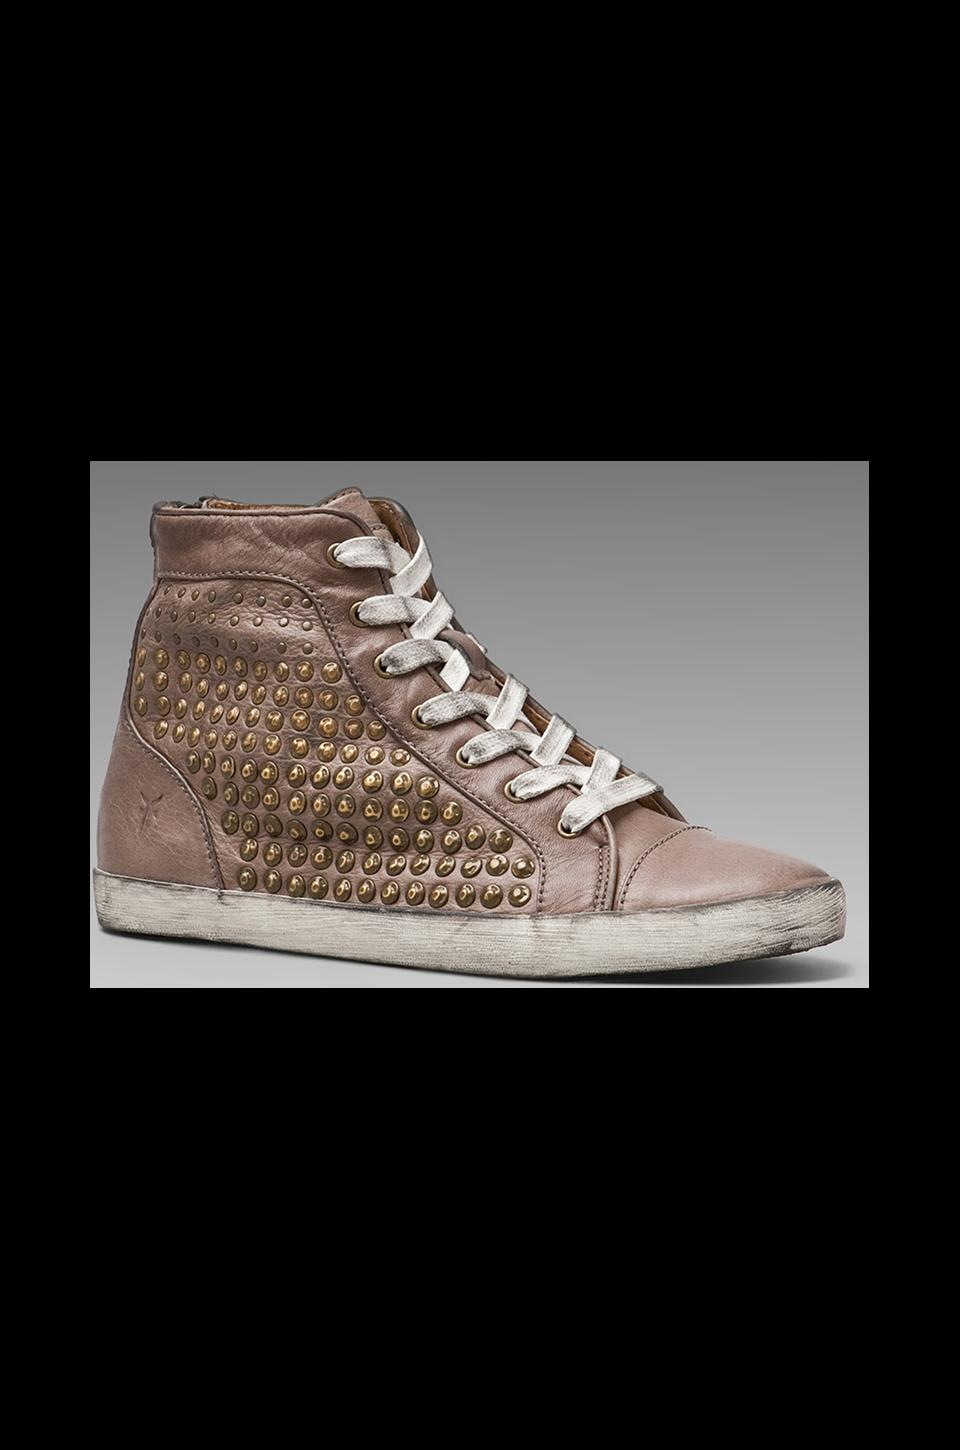 Frye Kira Studded High Top in Grey